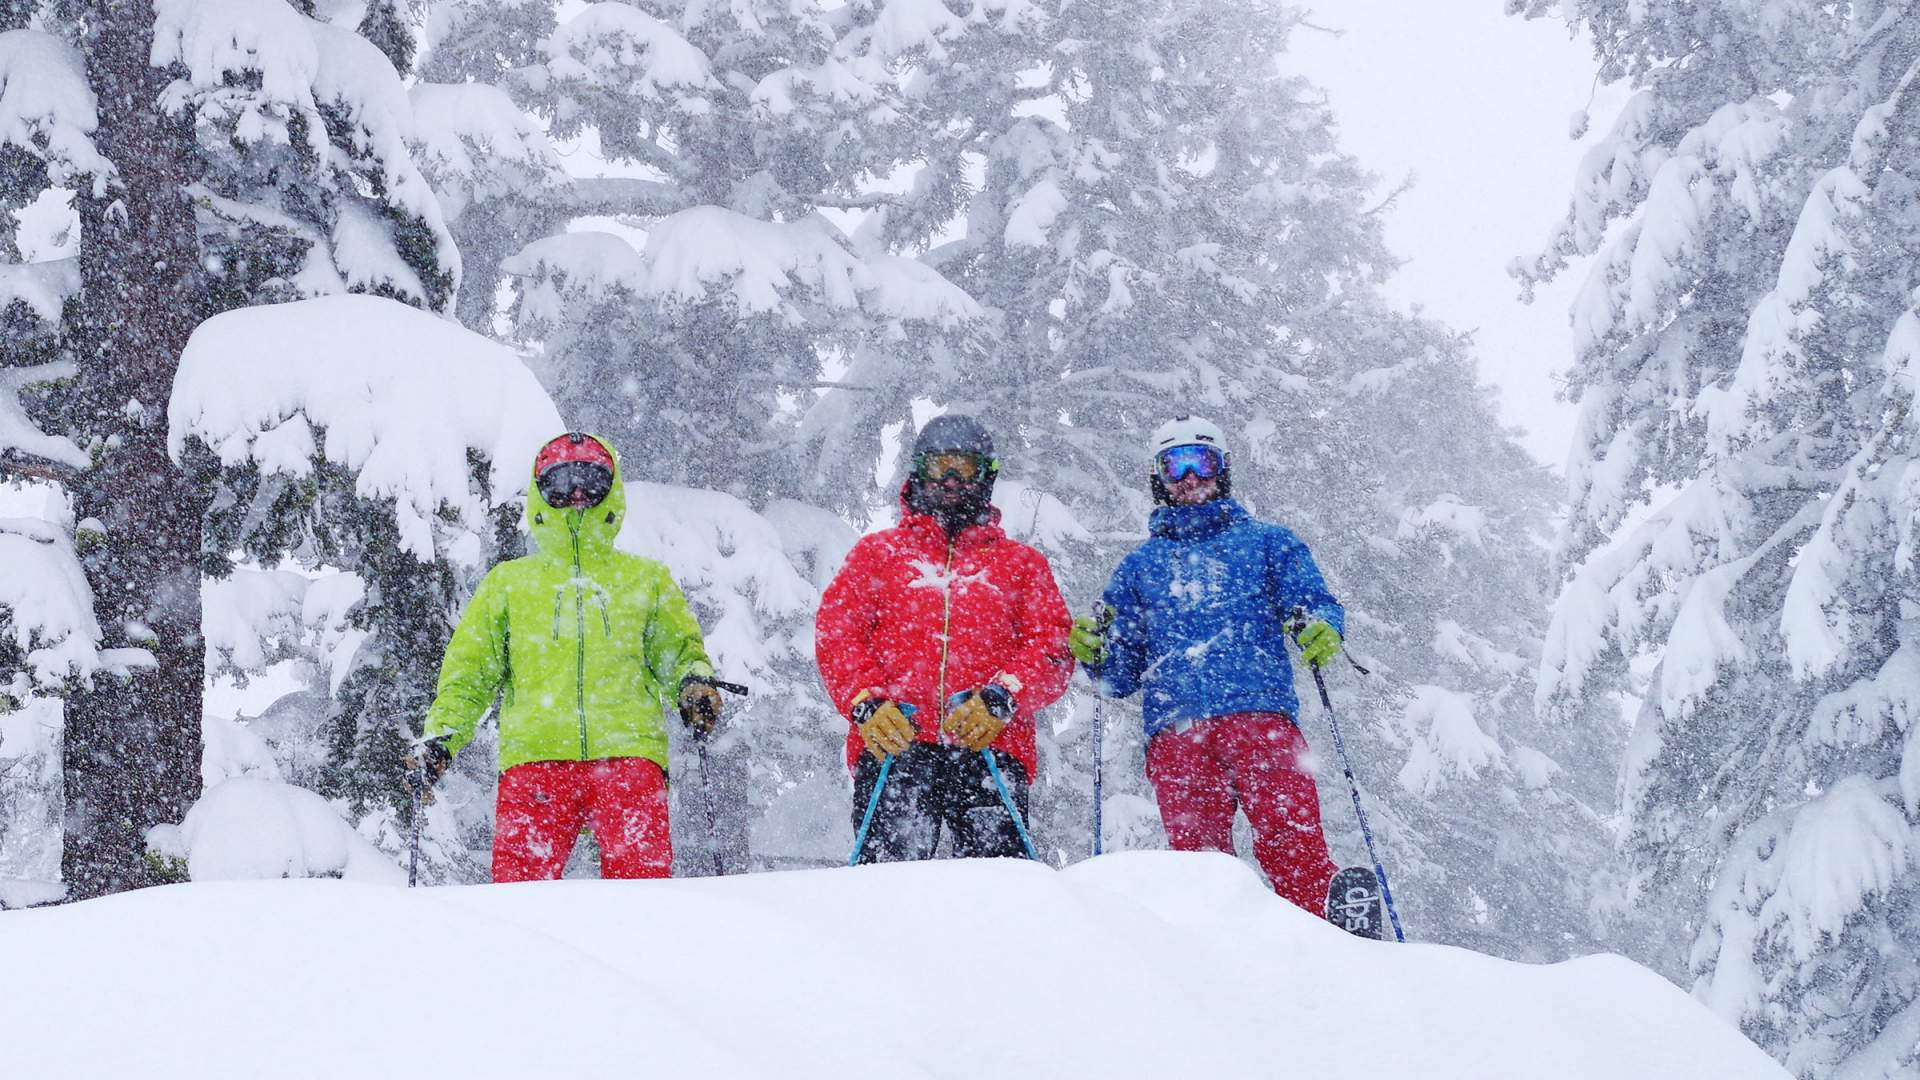 Bear Valley is known as a family-friendly resort with lifts and runs for everyone from beginners to advanced skiers. The ski area is 48 miles east of Angels Camp, with lifts covering elevations from 6, feet to 8, feet.